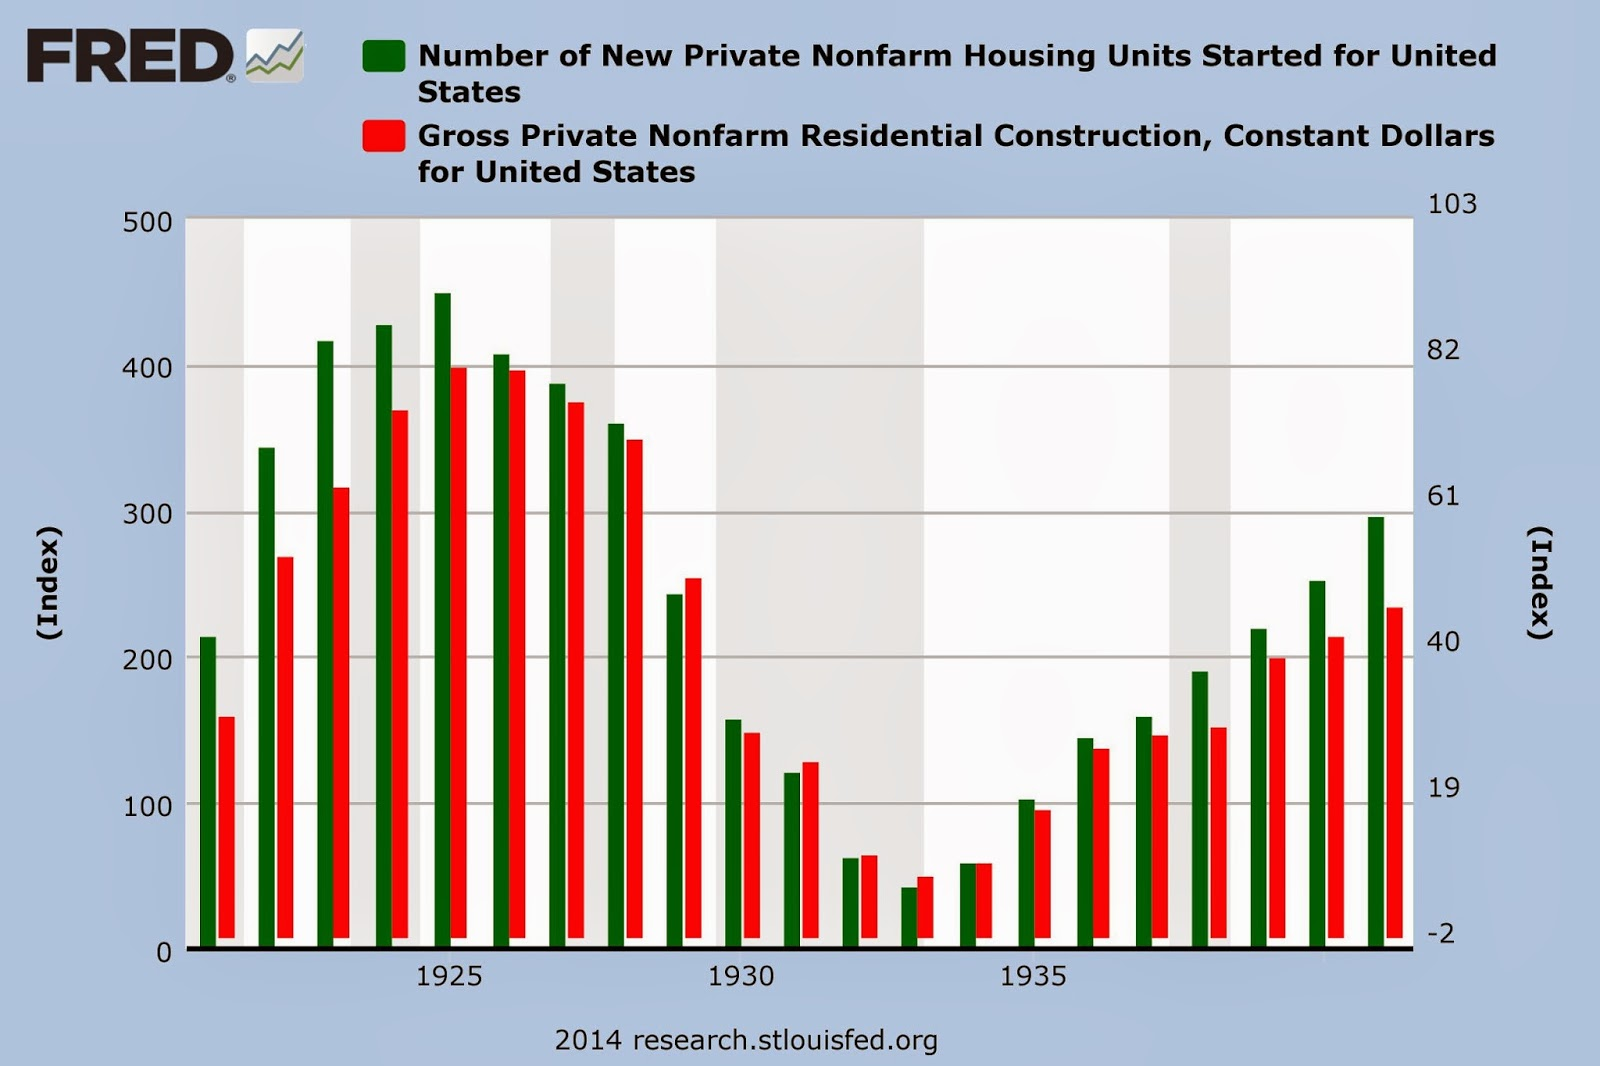 Charge of New Private Nonfarm Housing Units Started for United States and Gross Private Nonfarm Residential Construction for United States before and during the Great Depression